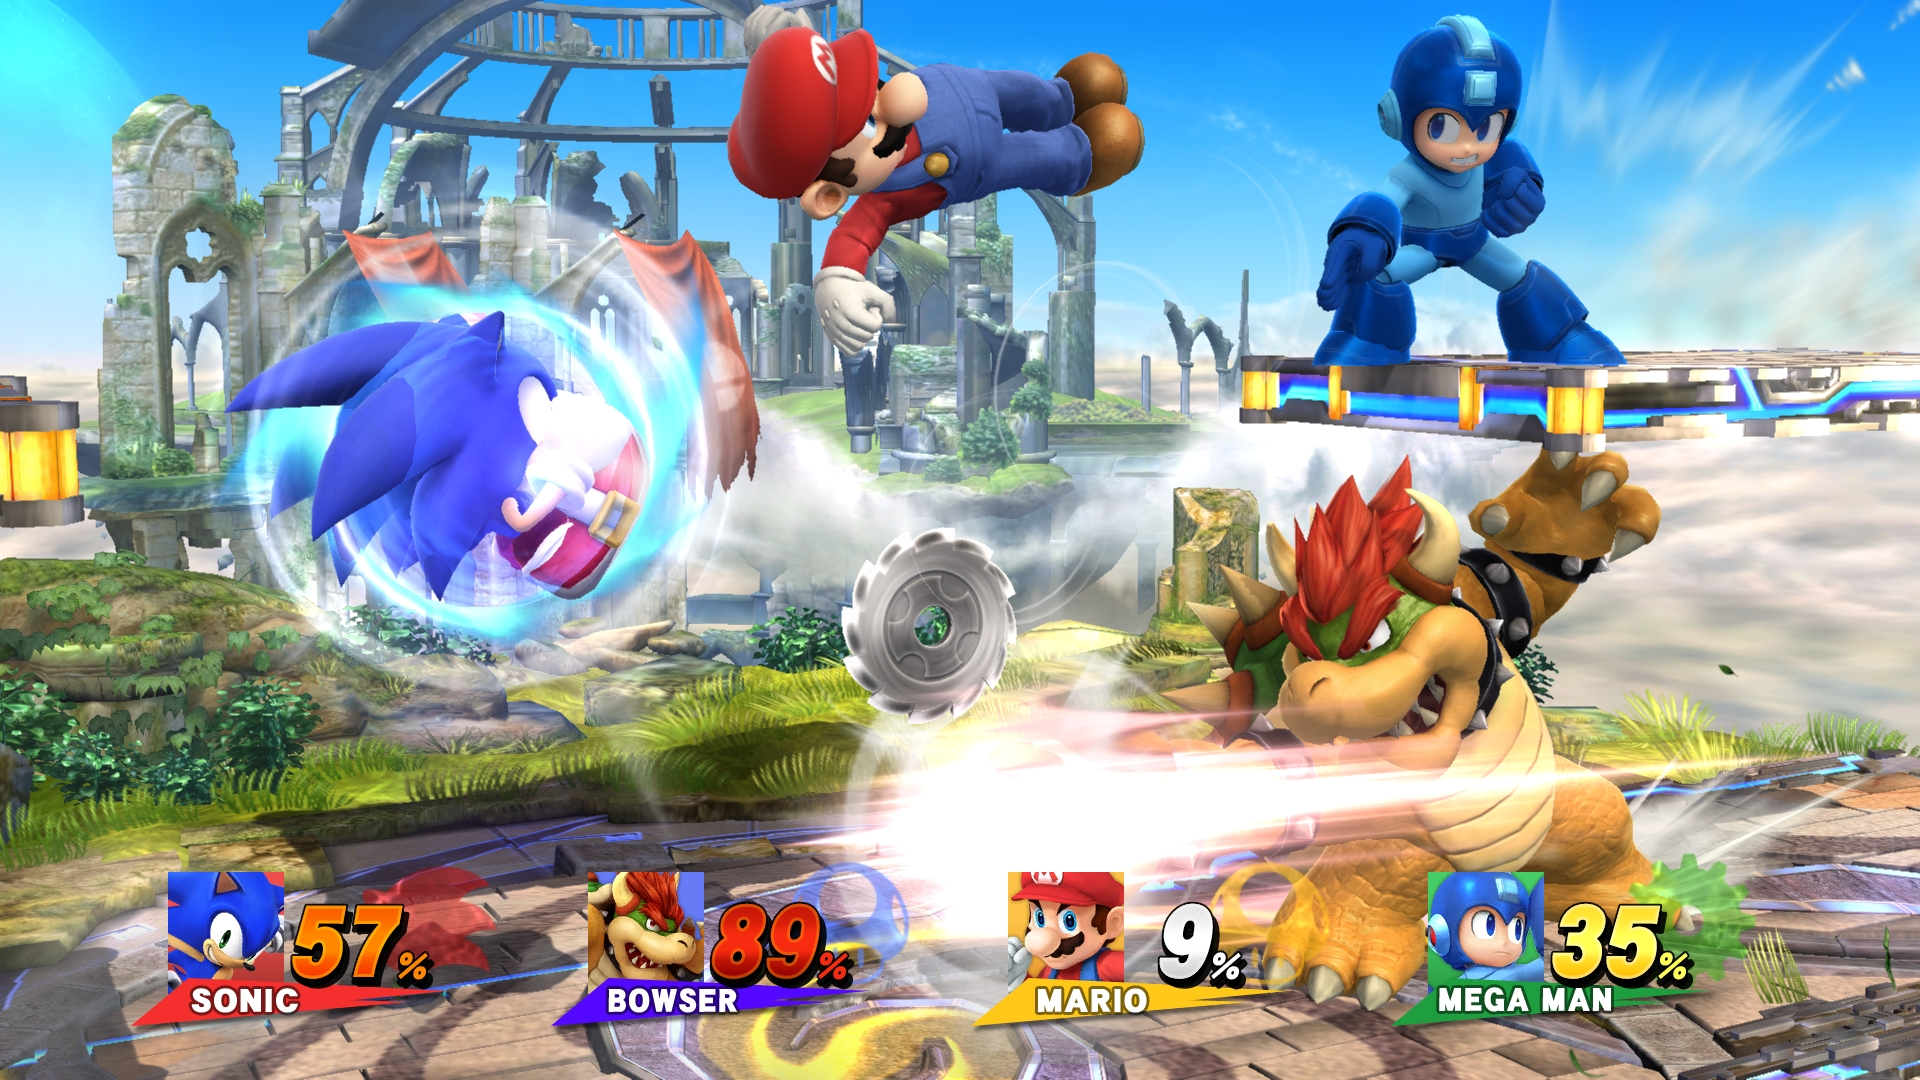 The famed fighting franchise Super Smash Bros. appears for the first time in HD on Wii U this holiday season. (Photo: Business Wire)